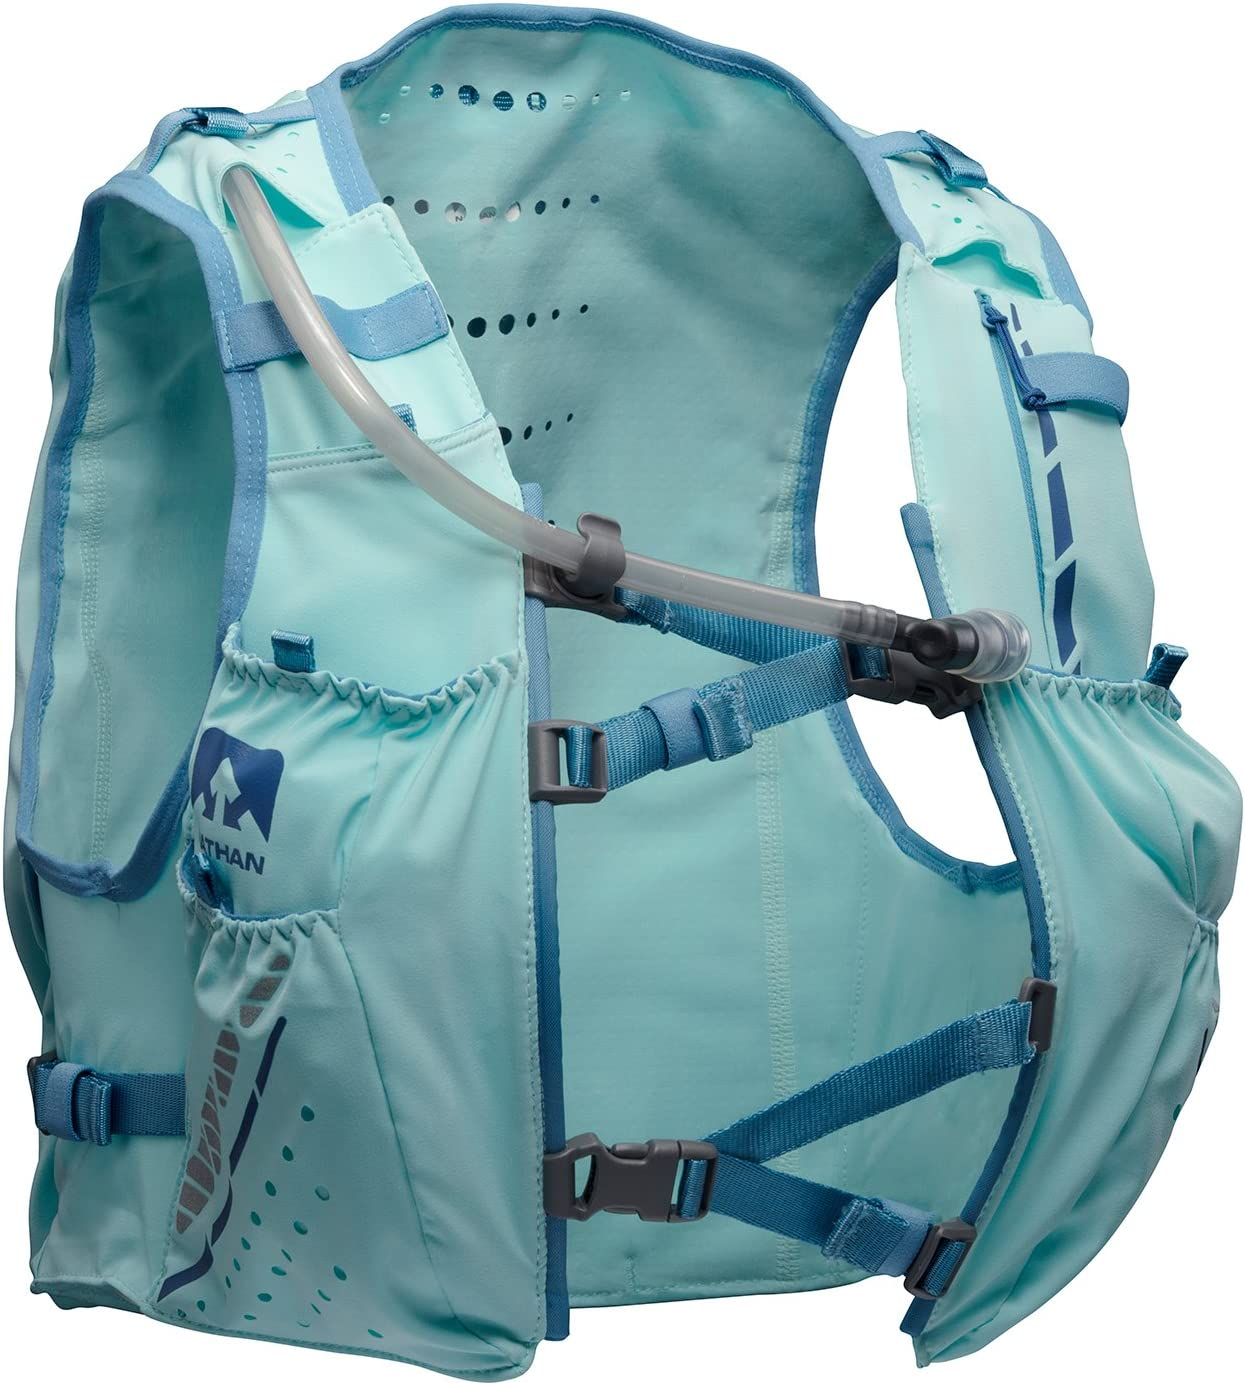 Nathan Vaporhowe Hydration Pack, Running Vest with 1.8L Hydration Bladder Reservoir, Women s